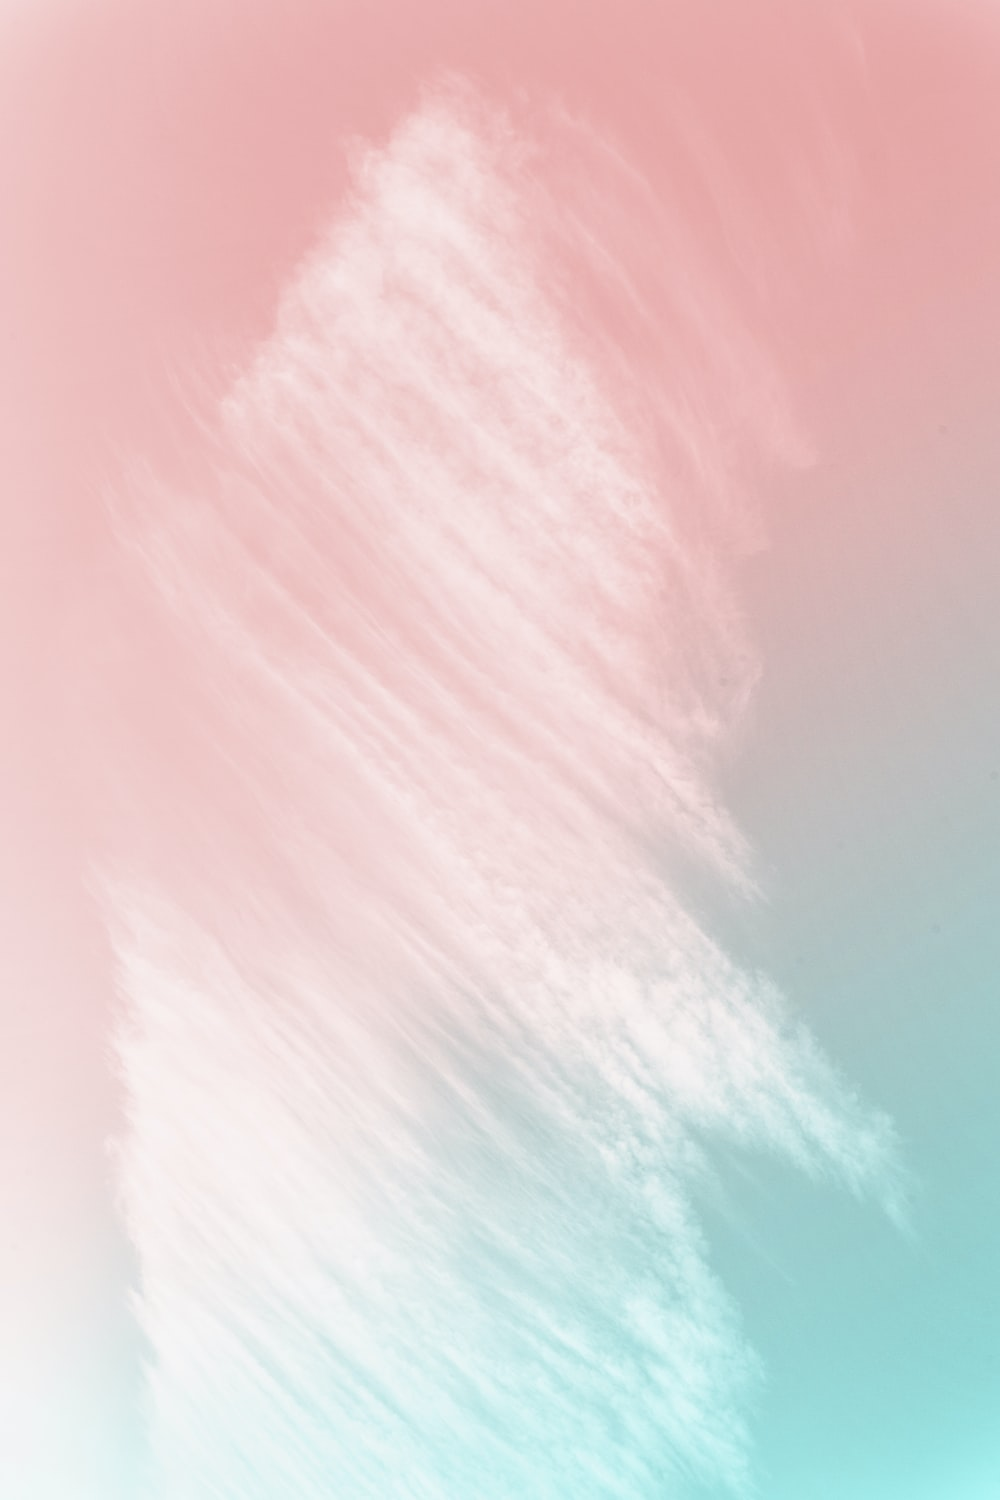 Pastel Wallpapers Free Hd Download 500 Hq Unsplash See more ideas about pastel, pink aesthetic, aesthetic. pastel wallpapers free hd download